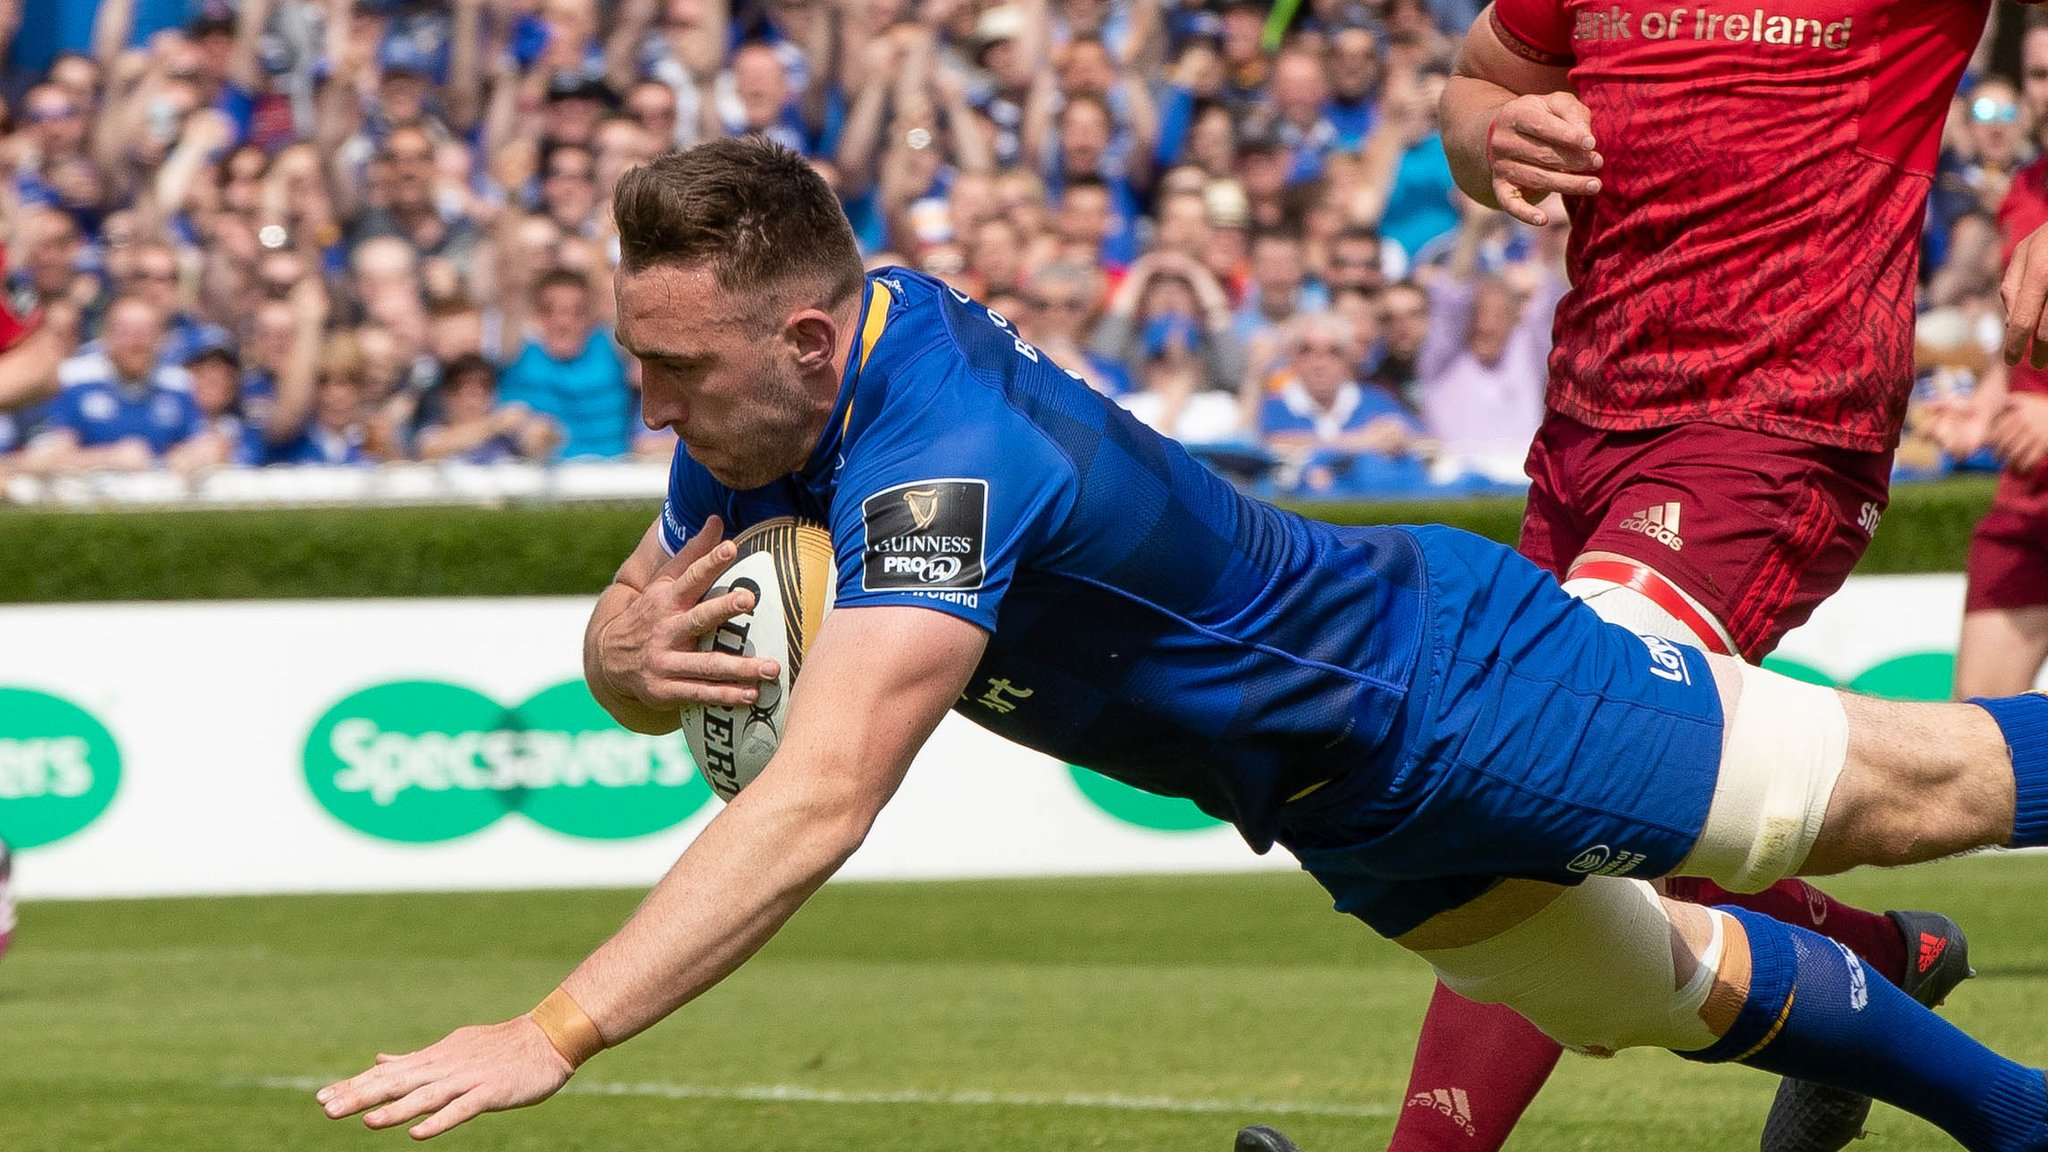 Leinster edge past Munster into Pro14 final